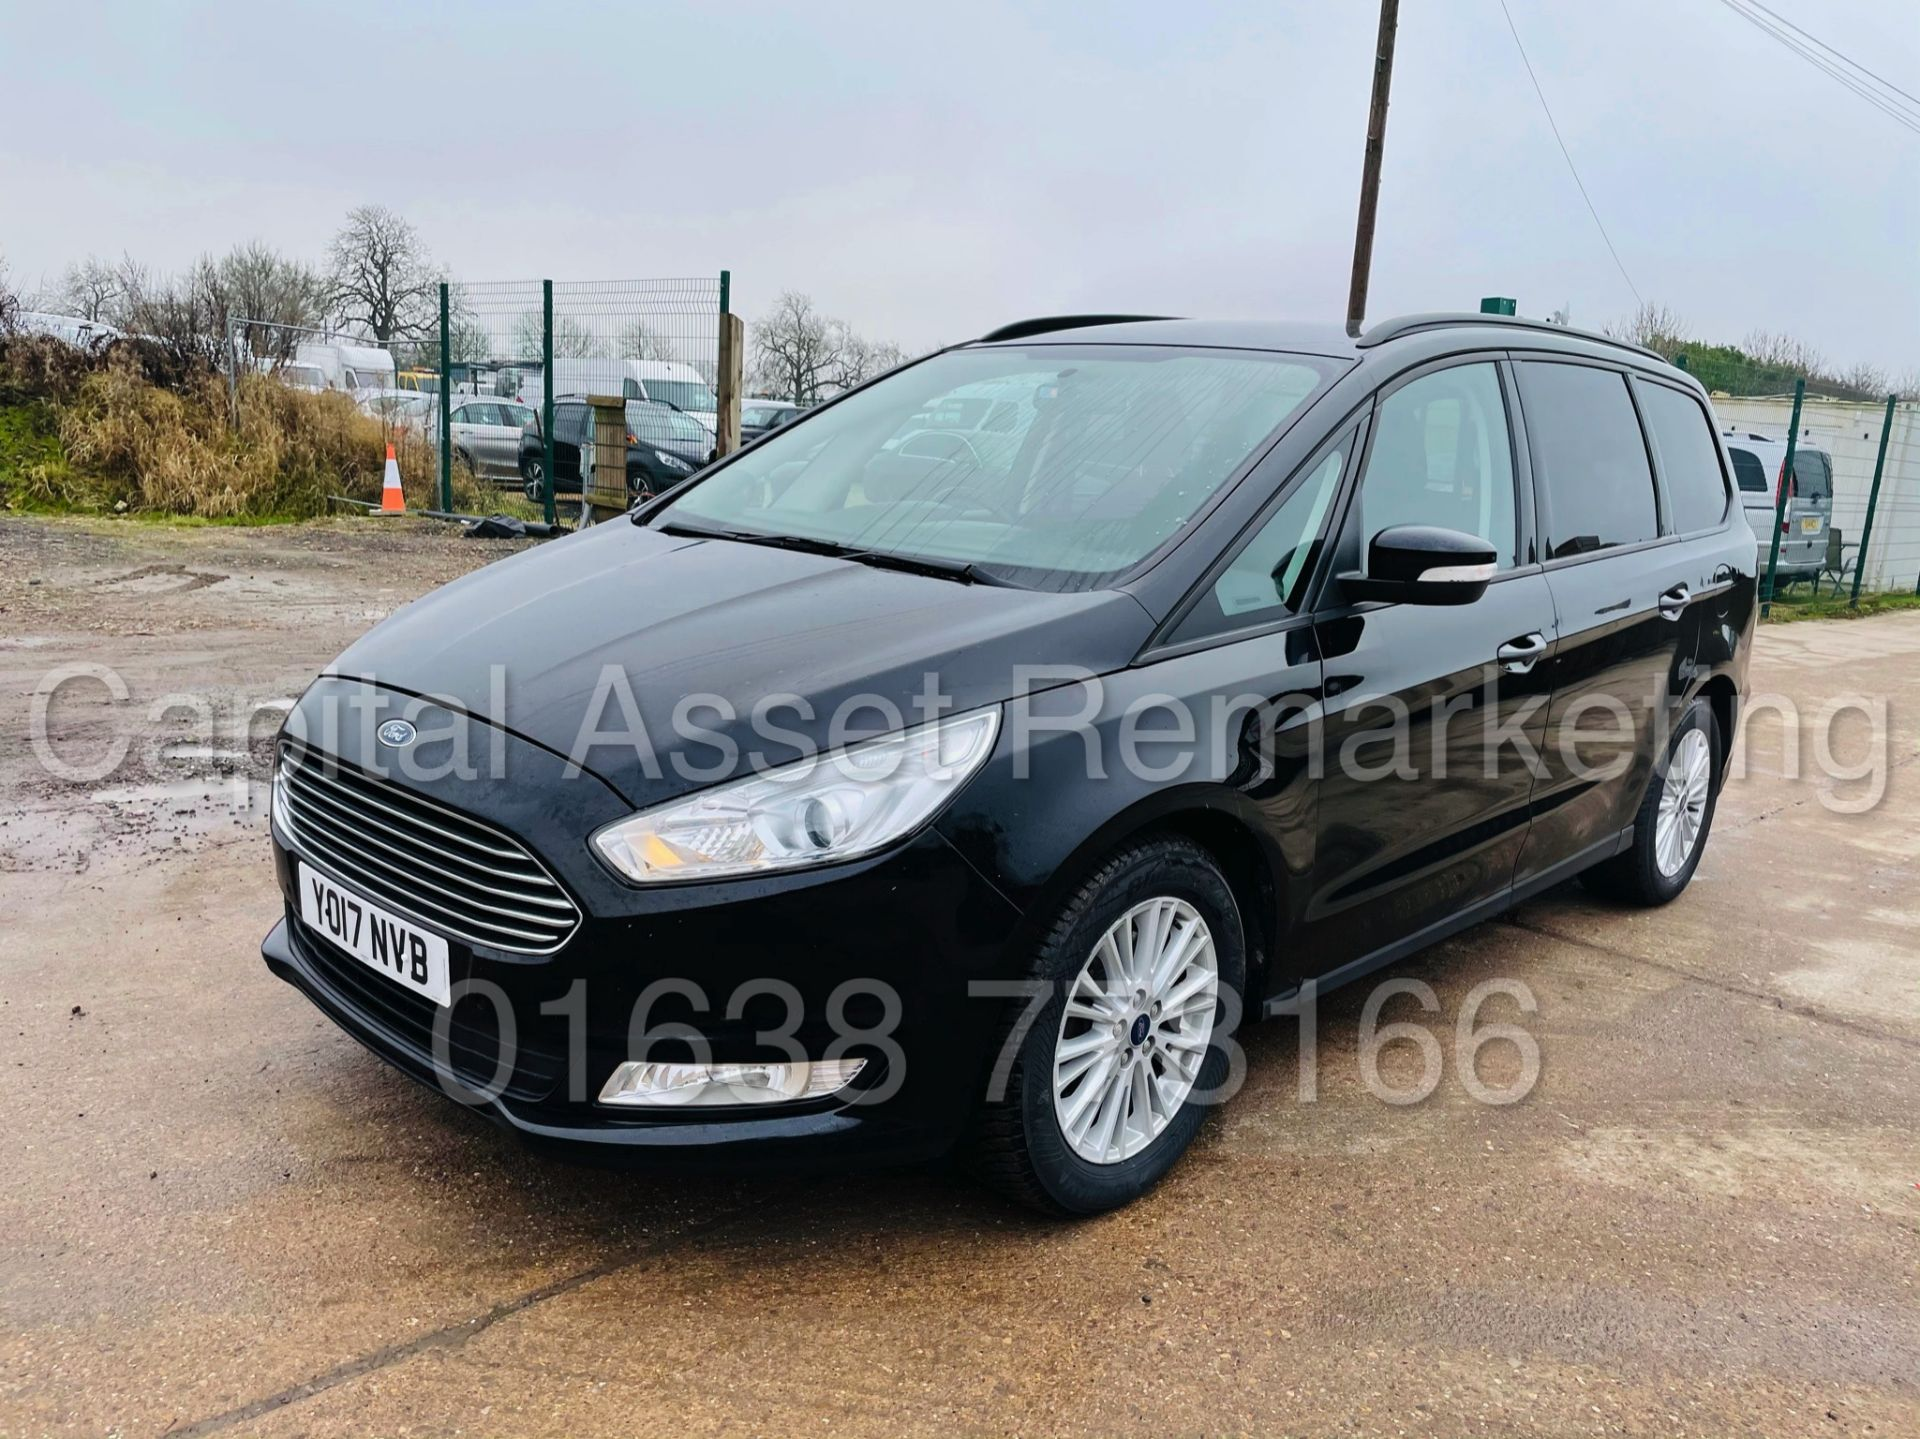 (On Sale) FORD GALAXY *ZETEC EDITION* 7 SEATER MPV (2017 - EURO 6) '2.0 TDCI - AUTO' (1 OWNER) - Image 5 of 48